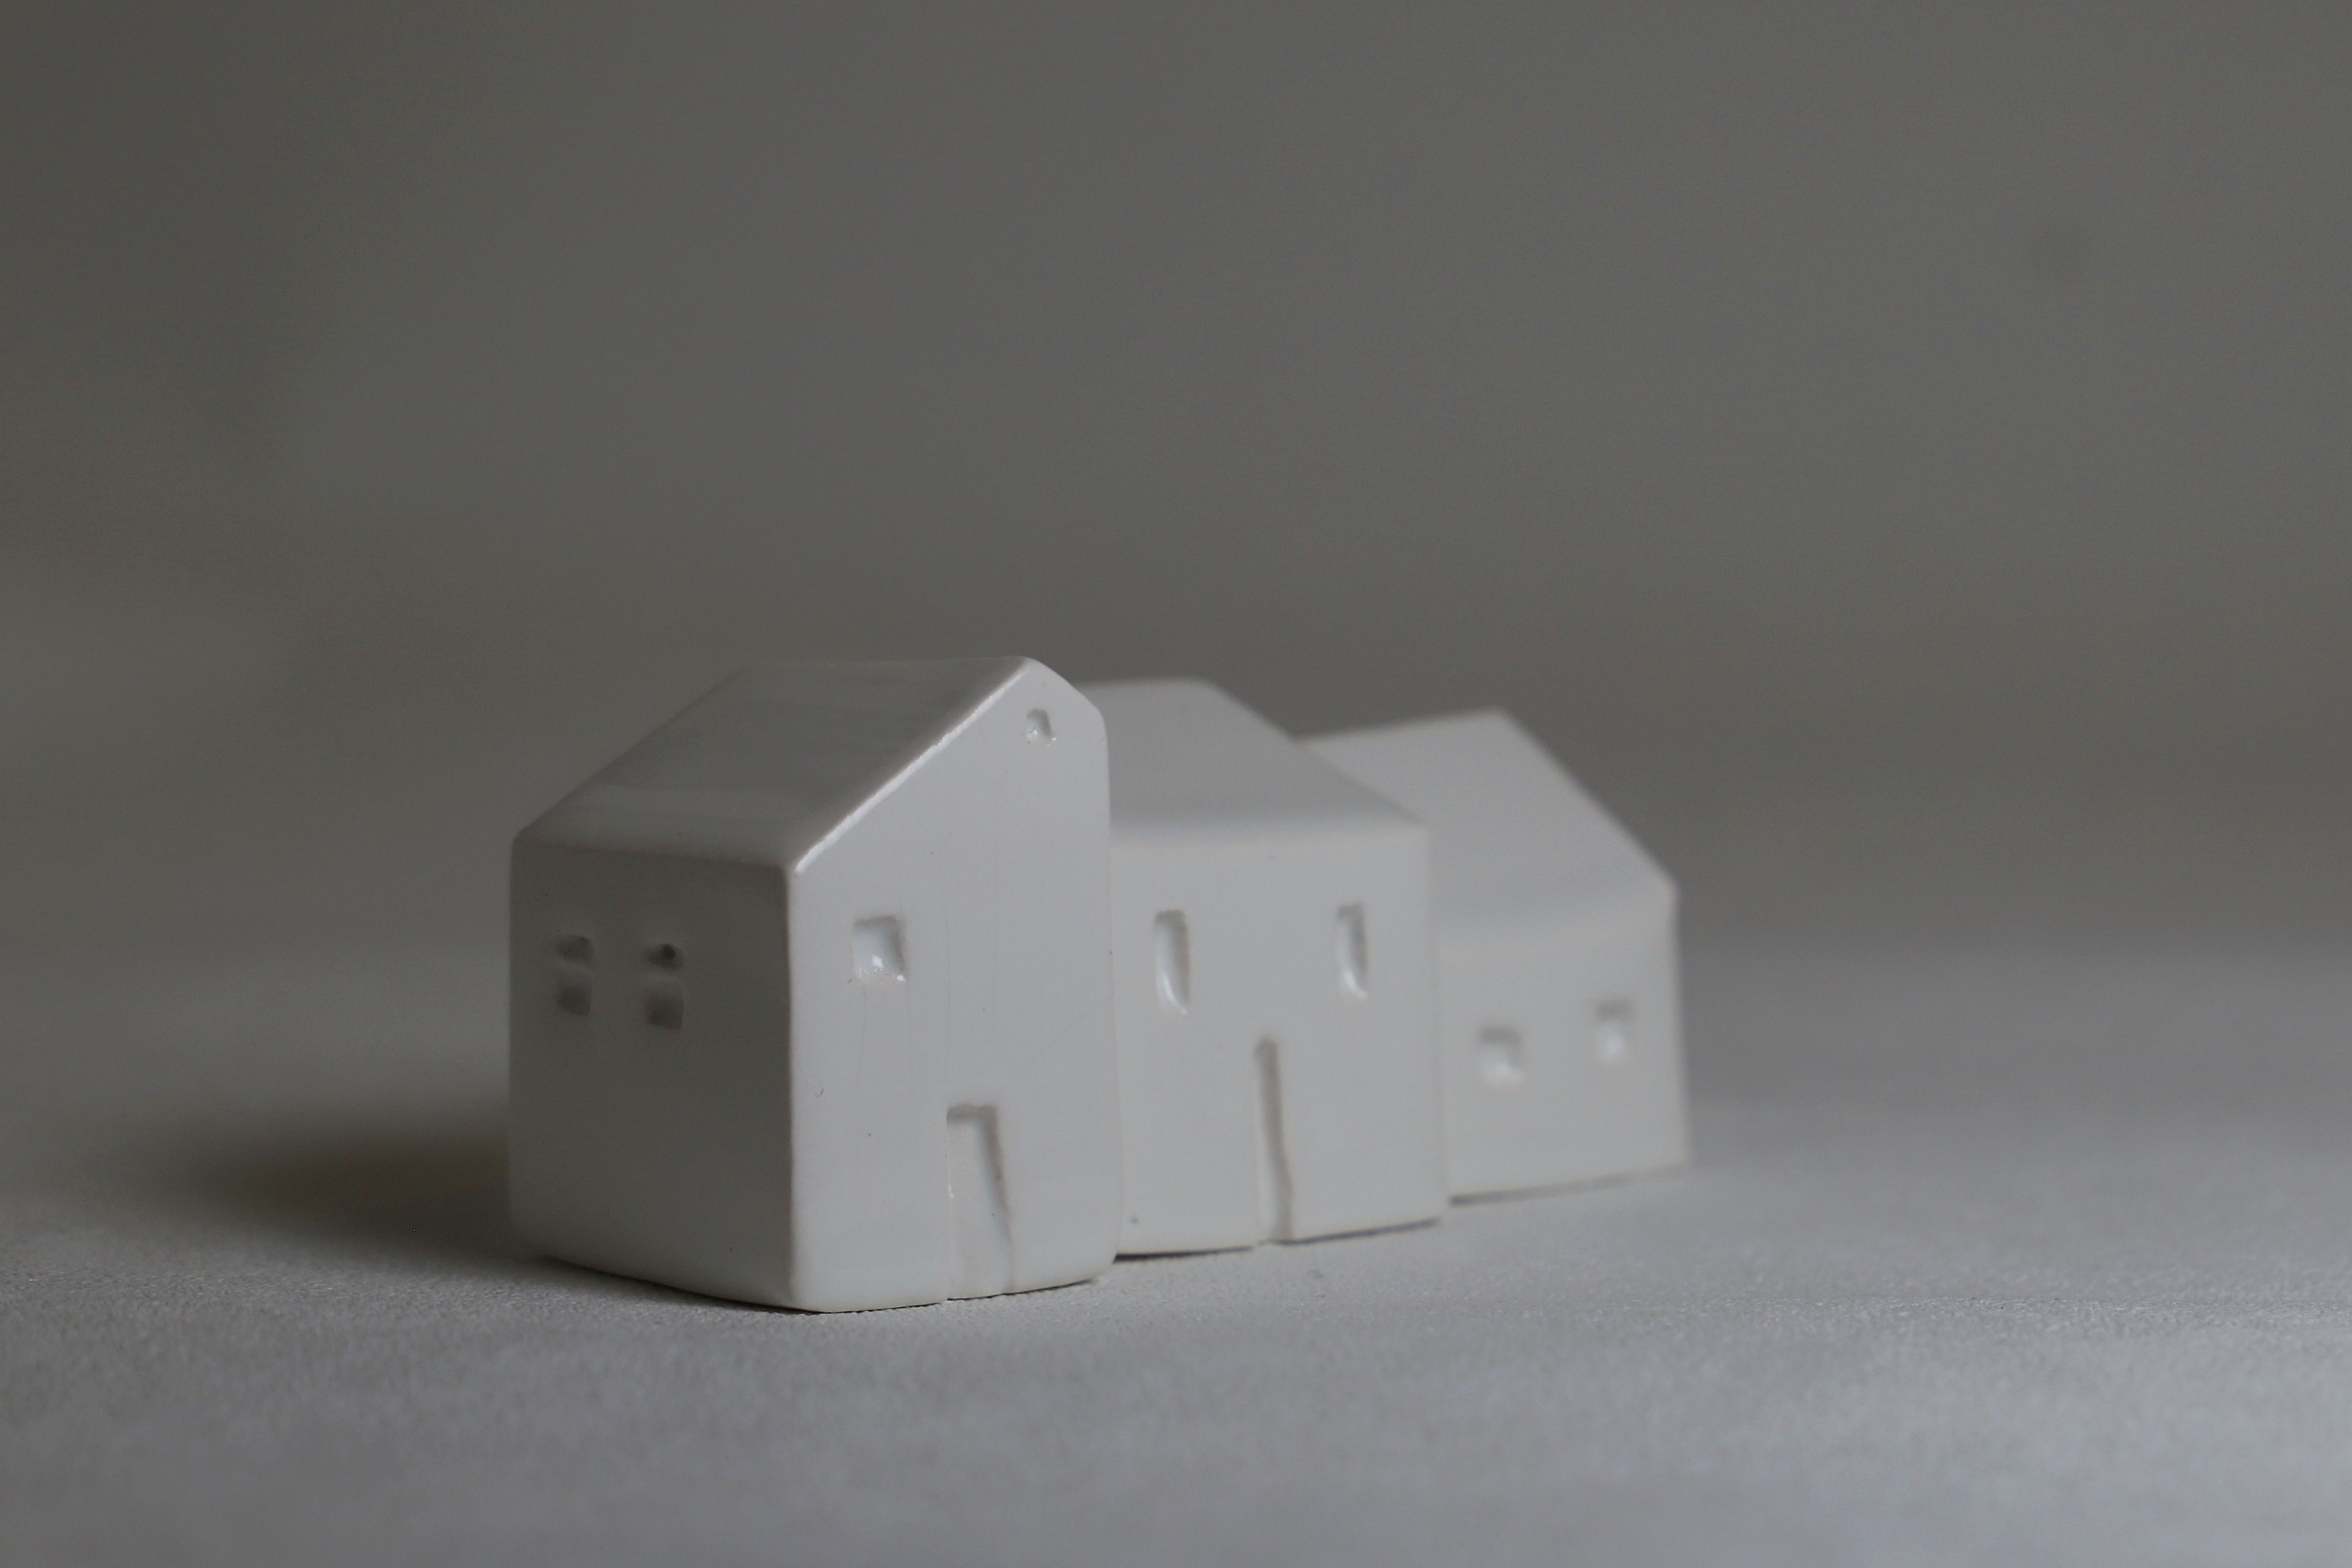 White Ceramic Houses Set Of 3 Small White Ceramic House Sculptures